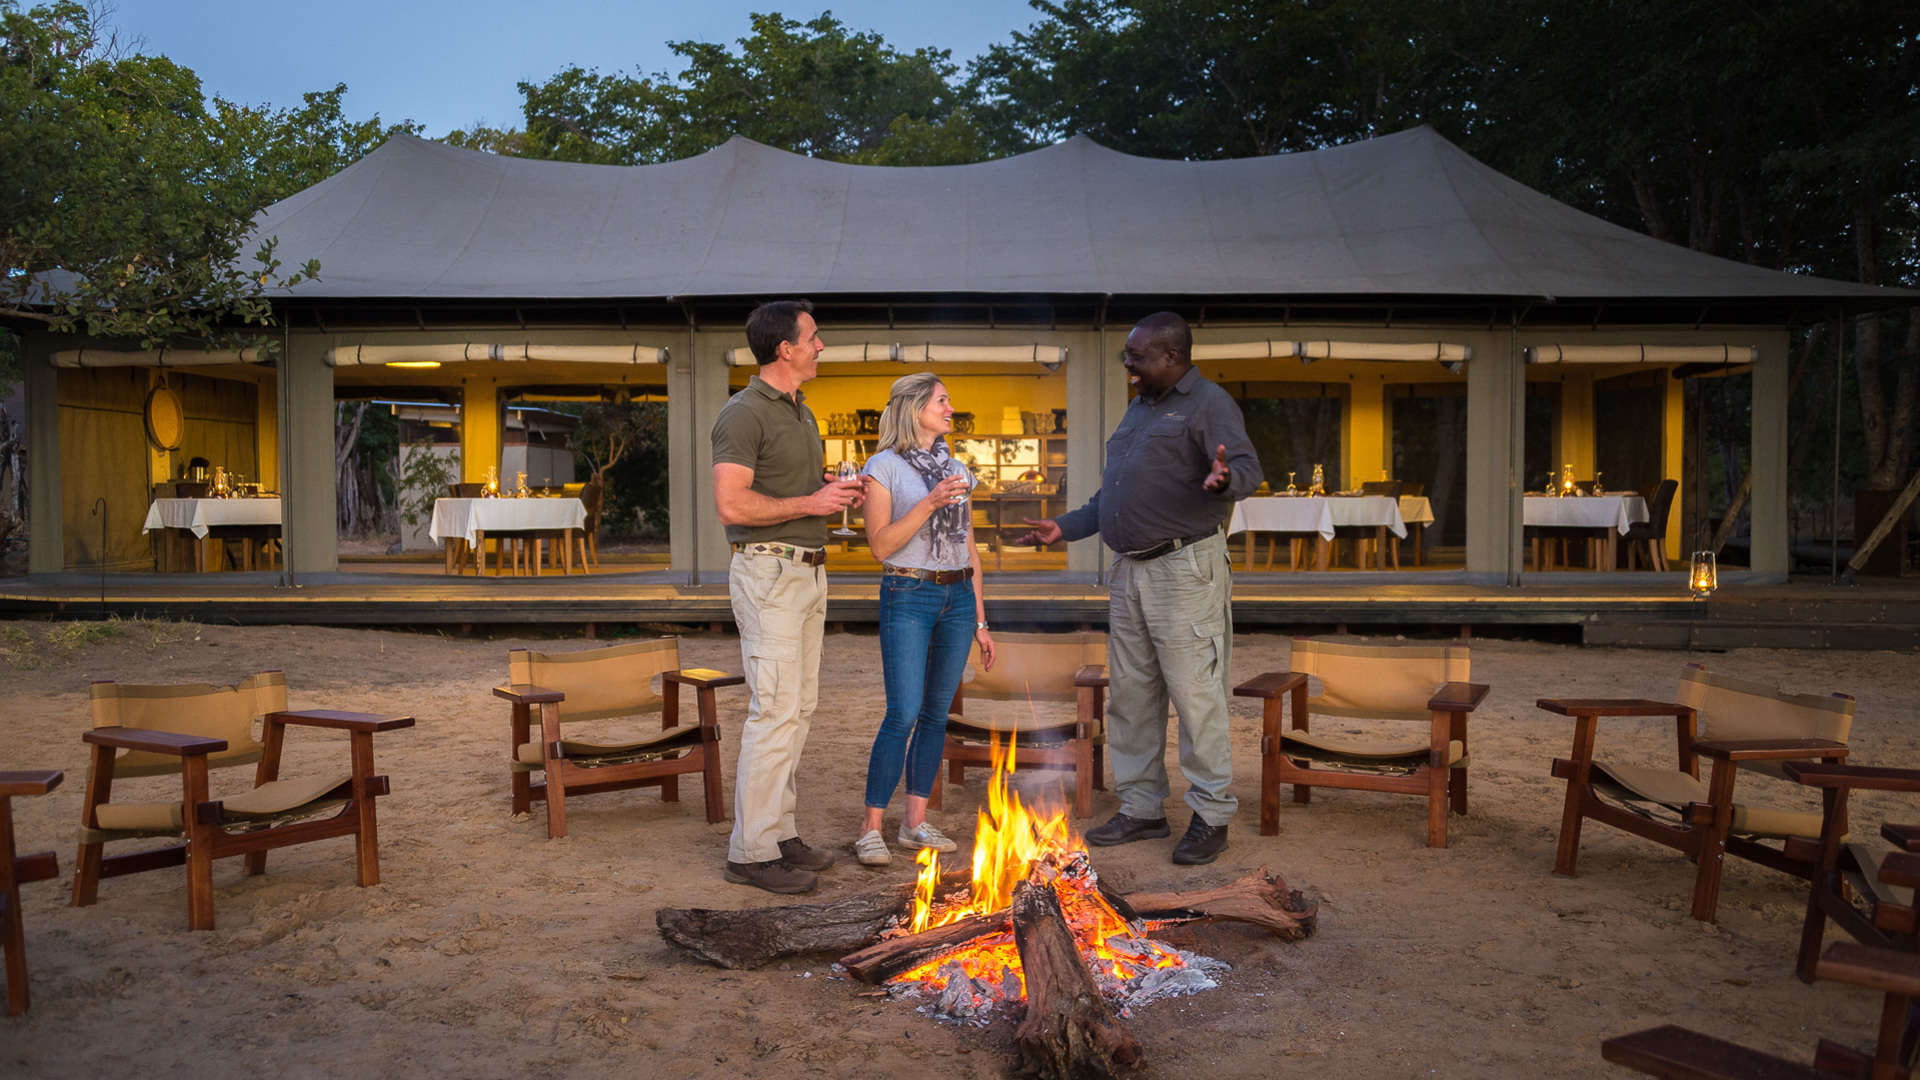 enkosi-africa-safari-zimbabwe-hwange-little-makalolo-camp-wilderness-fire